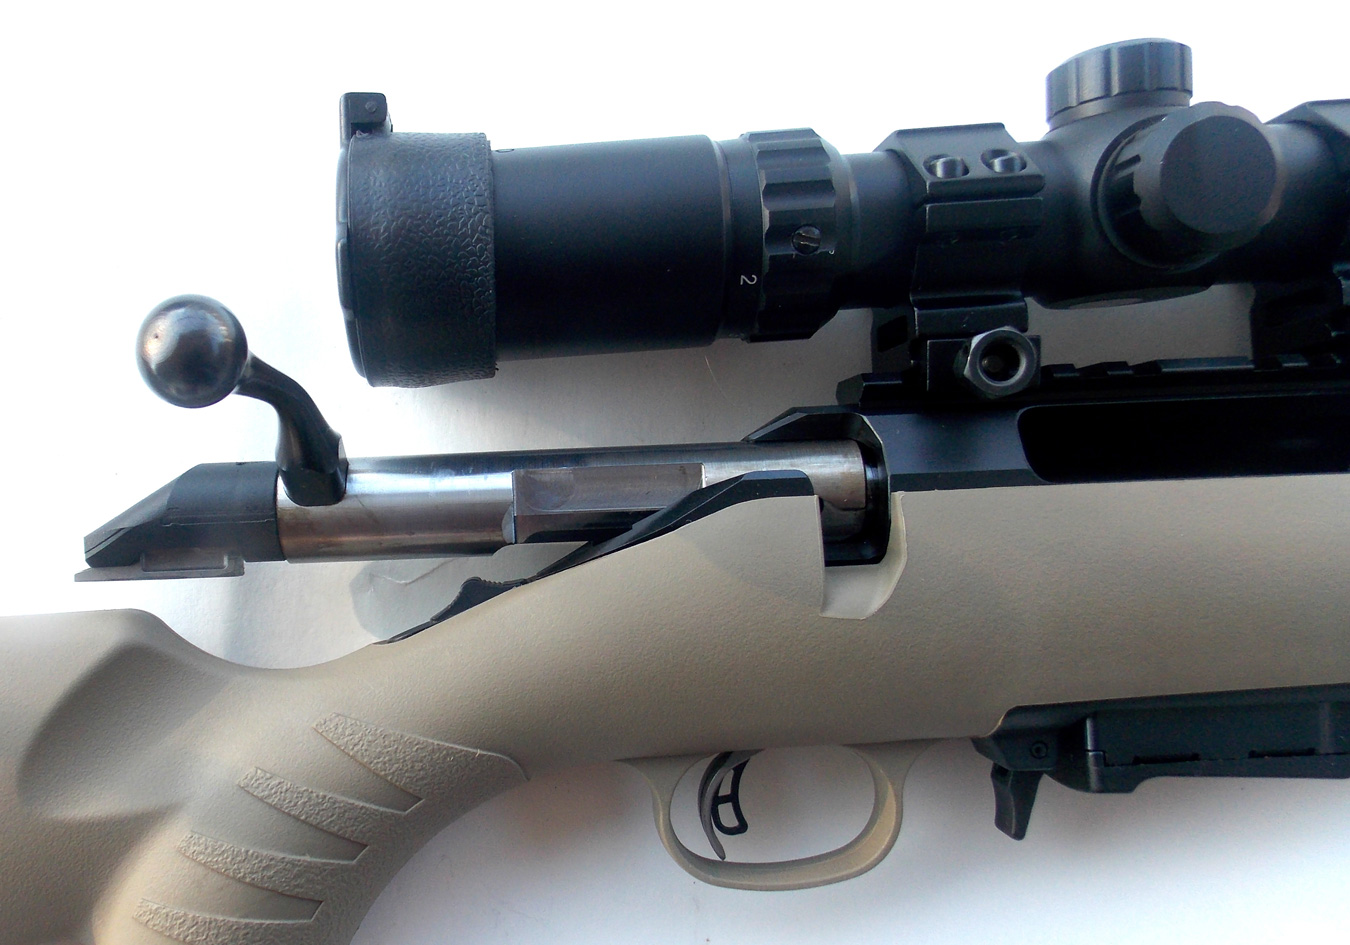 Ruger American rifle with the bolt in the open position